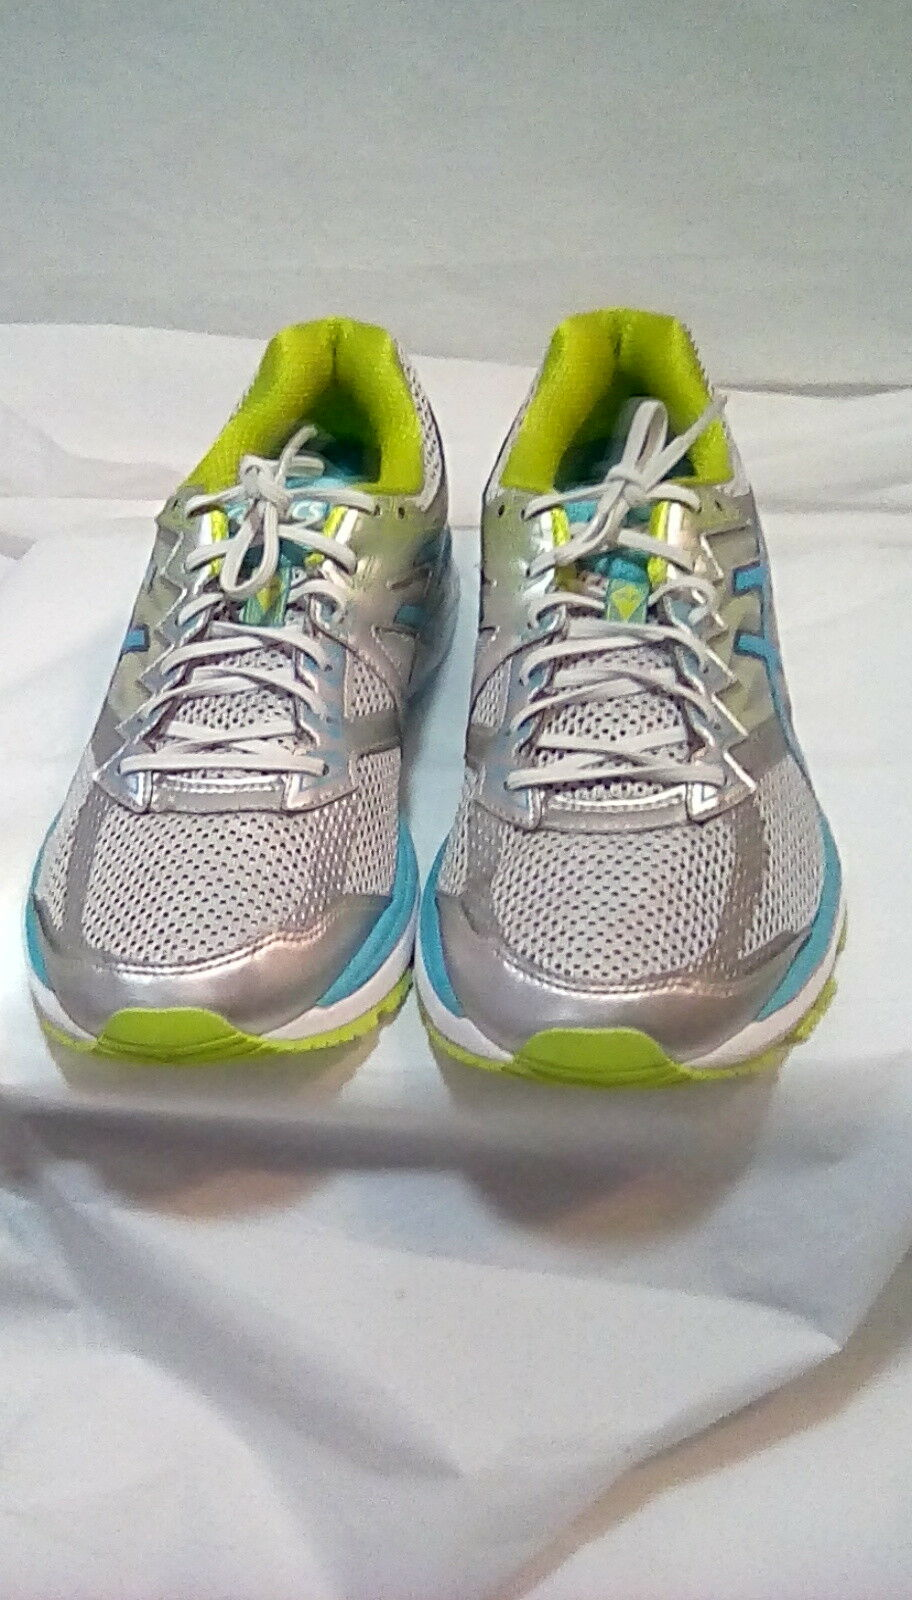 Asics-Women's GT-2000 IGS Fluid Ride Silver Teal Neon Green Running shoes Size 11